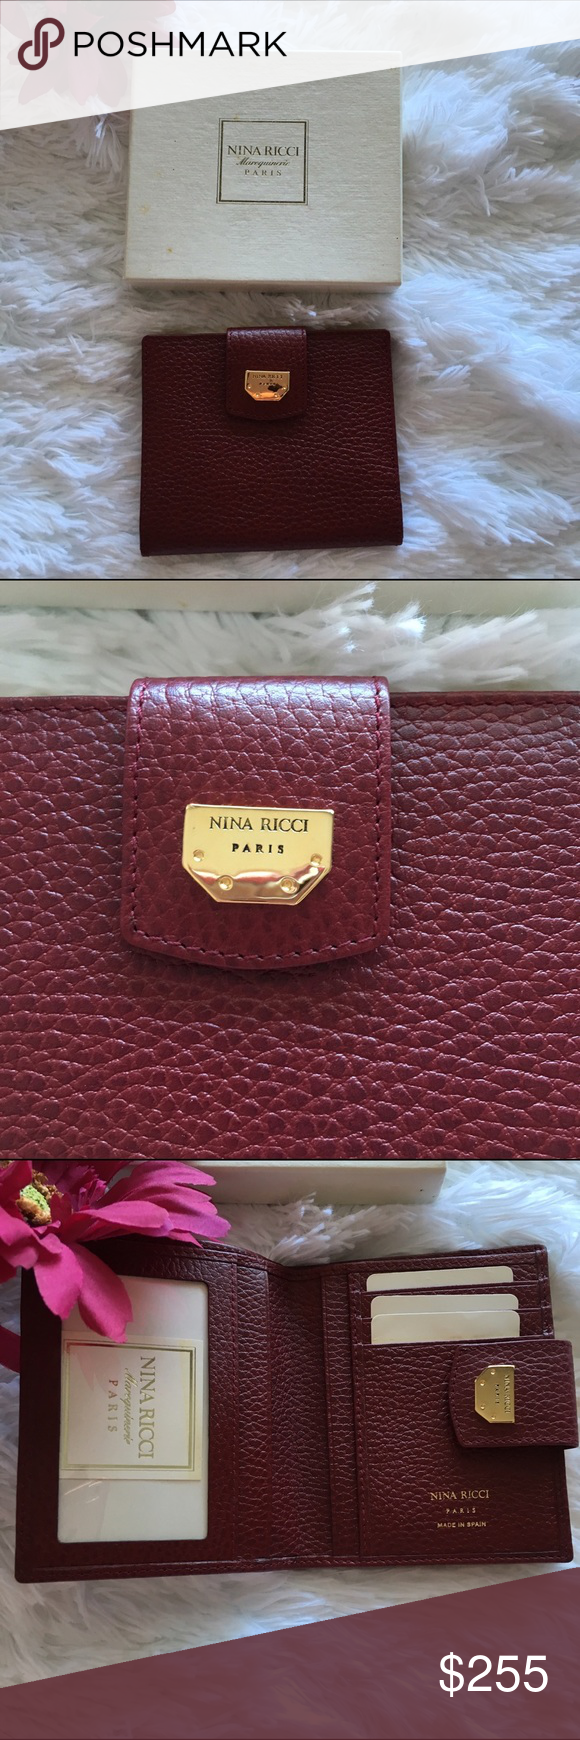 Vintage Nina Ricci Paris Wallet New In Box Gorgeous Designer Wallet That Is Brand New And Perfect In Every Way Th Nina Ricci Bag Designer Wallets Nina Ricci